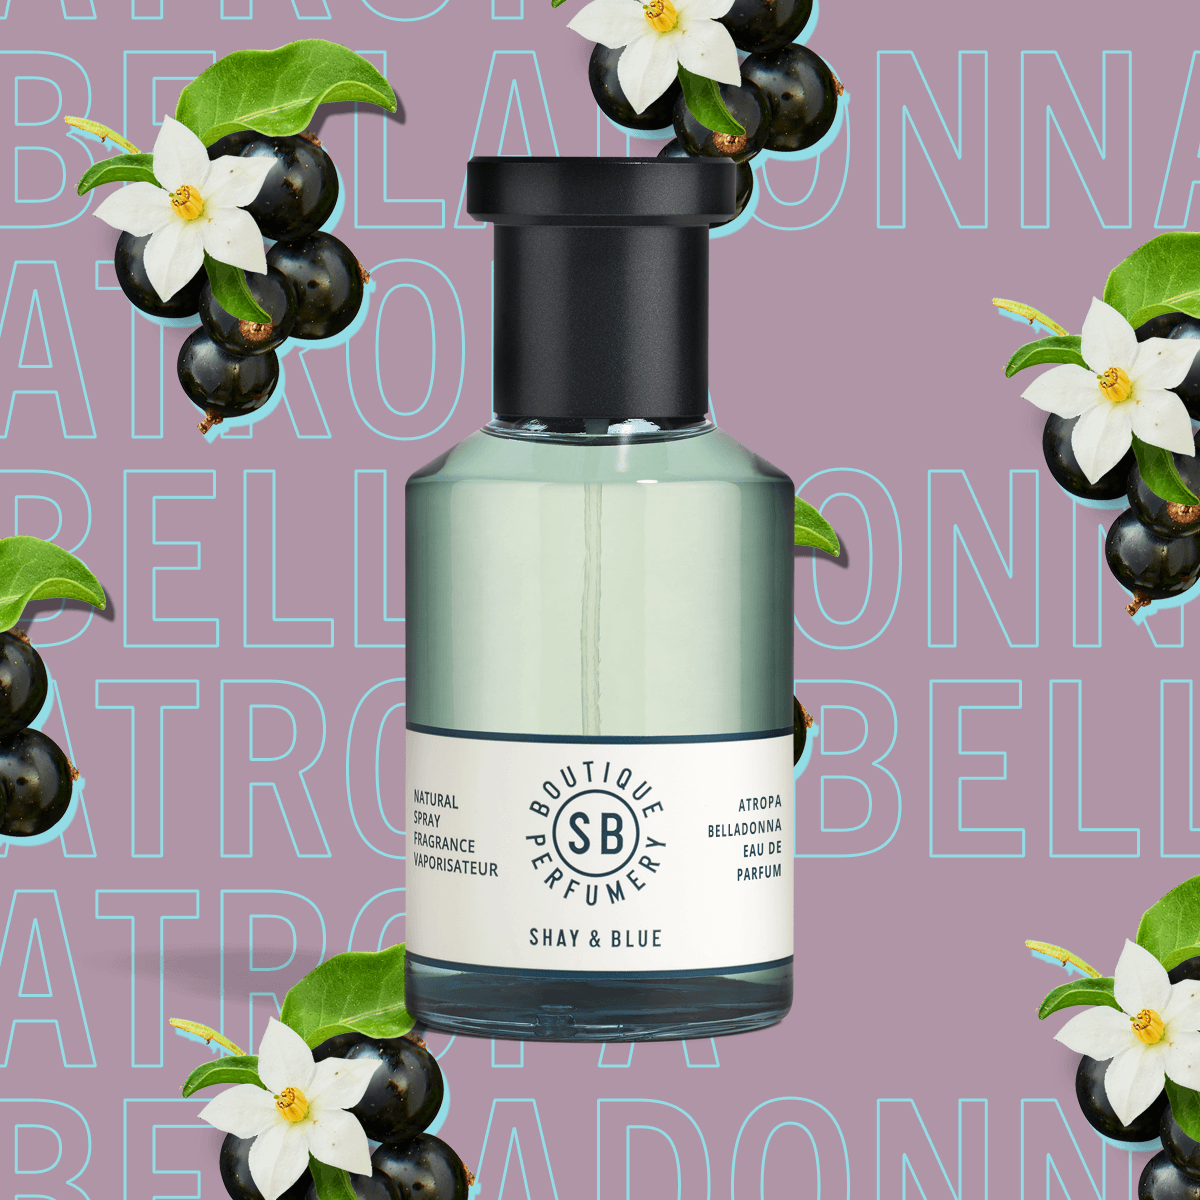 Atropa Belladonna Fragrance 100ml | Cassis berries and jasmine dance with layers of depth from patchouli and vanilla. | Clean All Gender Fragrance | Shay & Blue